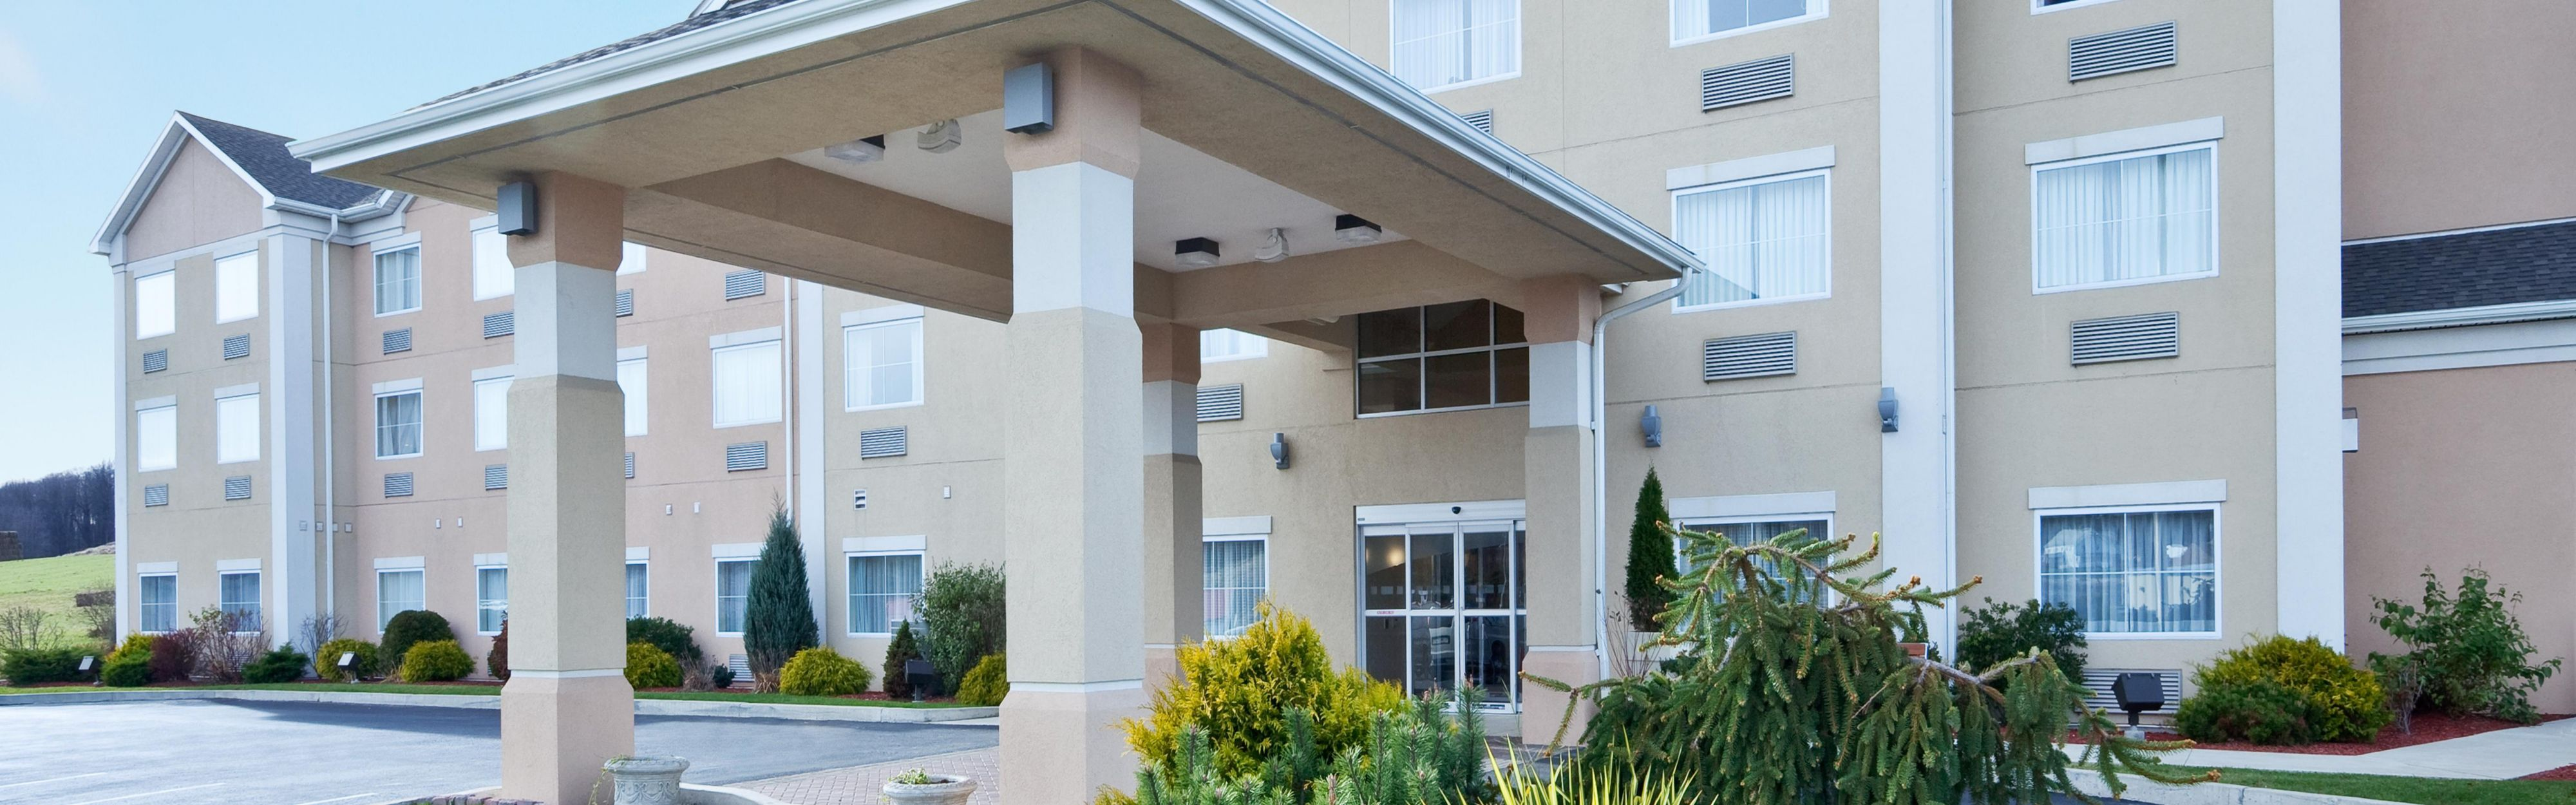 Holiday Inn Express & Suites Gibson image 0